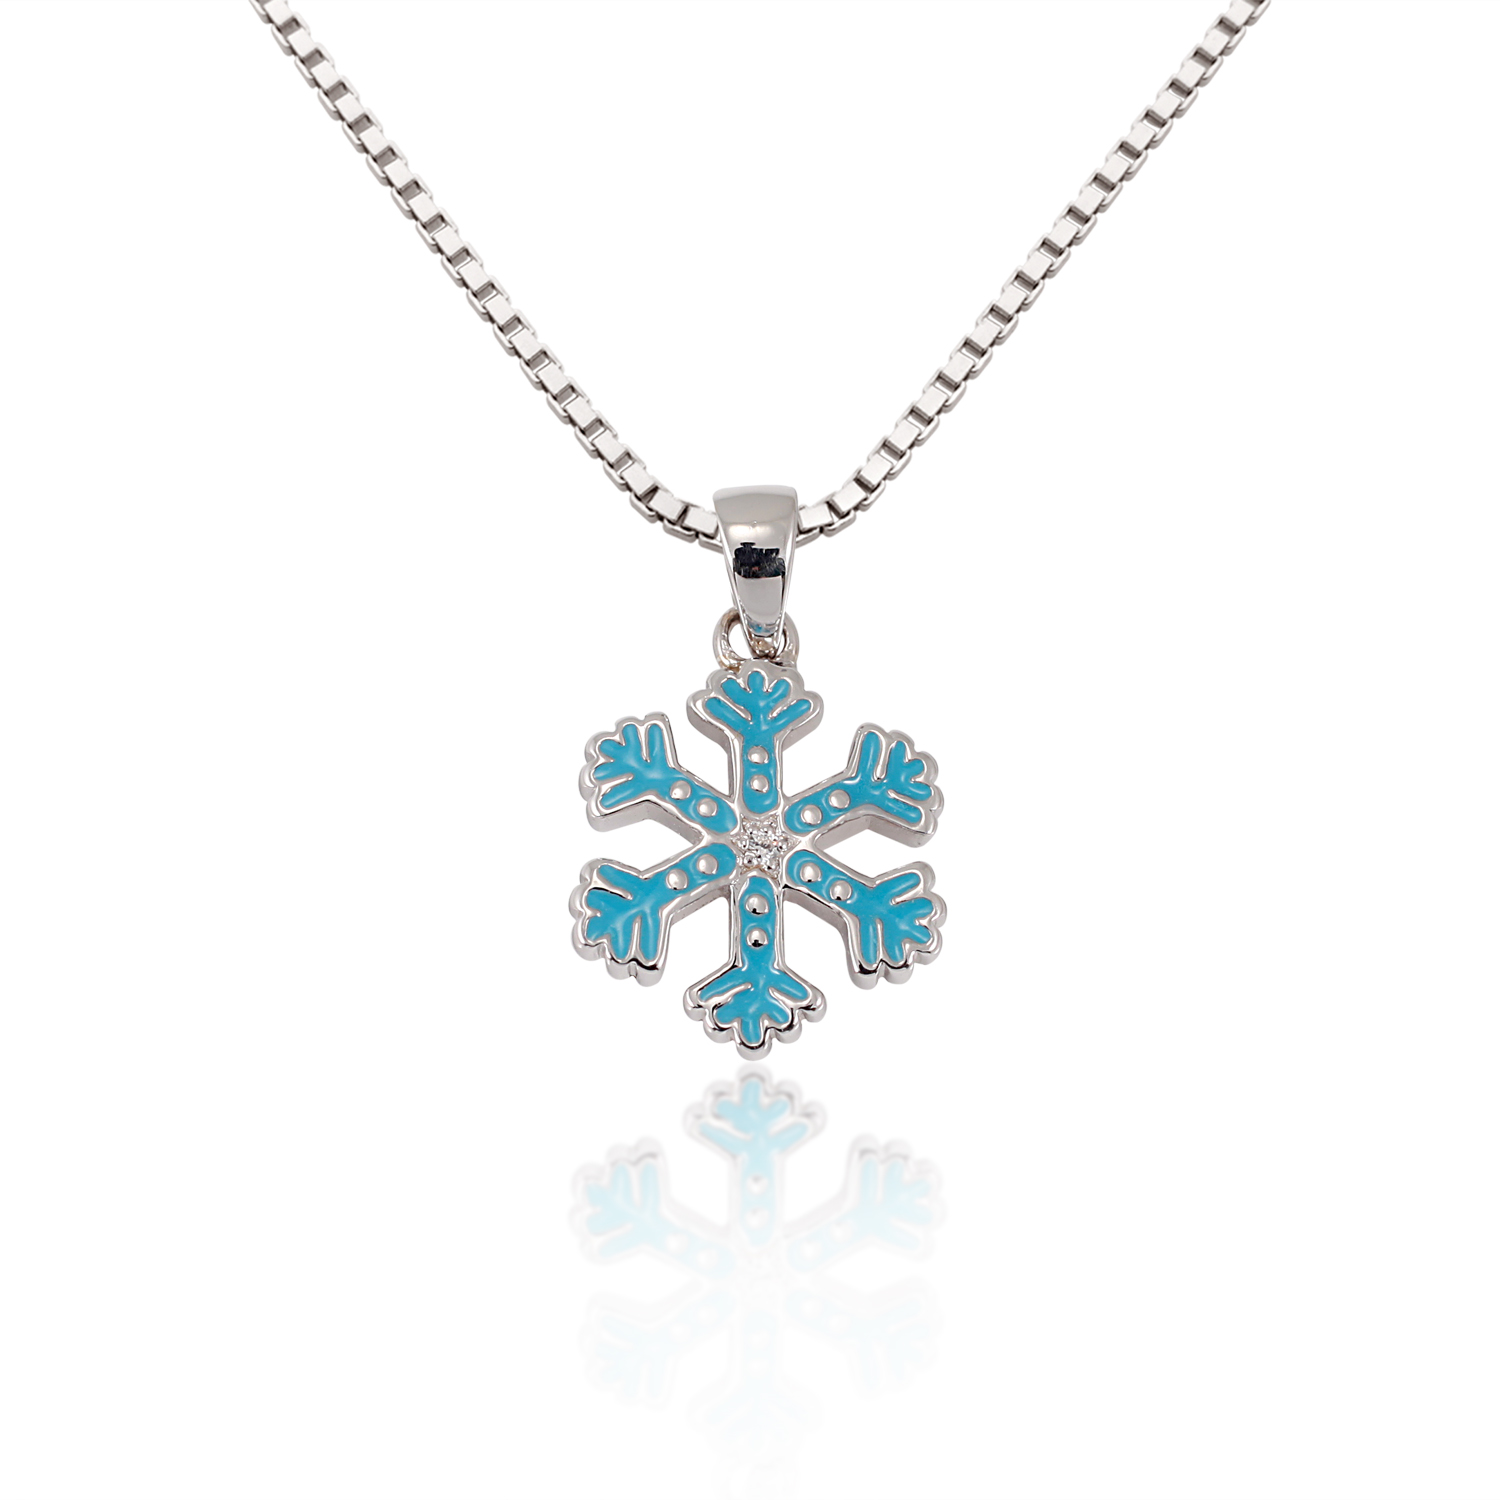 Children's 925 Sterling Silver Cubic Zirconia CZ Blue Snowflake Pendant Necklace, 13-15 inches